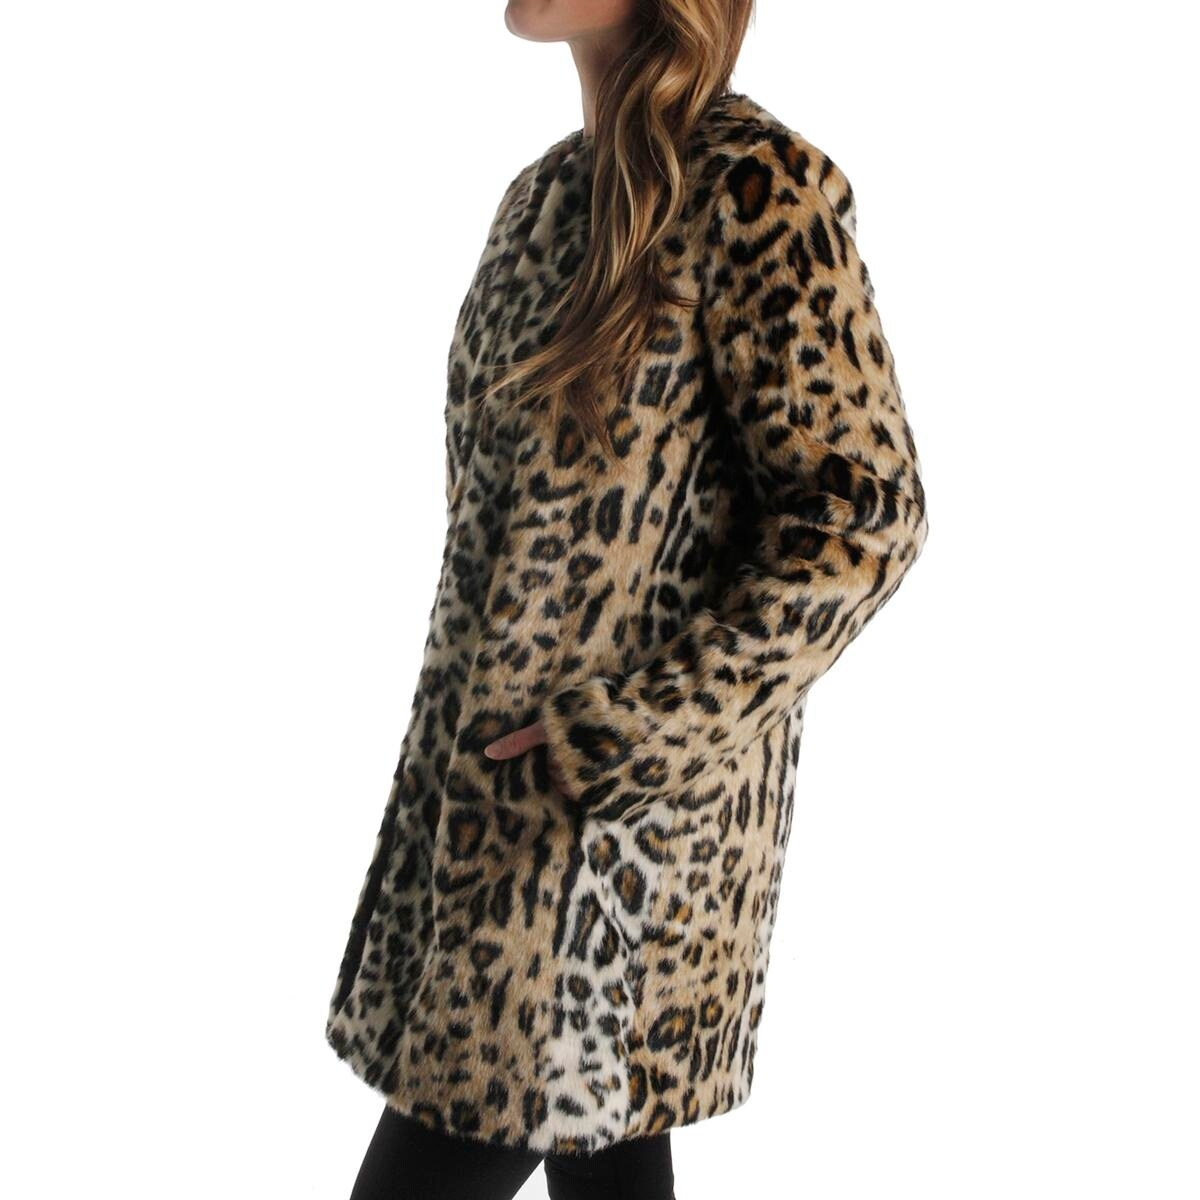 abaebc963ffc Shop T Tahari Womens Jenna Coat Faux Fur Animal Print - Free Shipping Today  - Overstock - 19628411